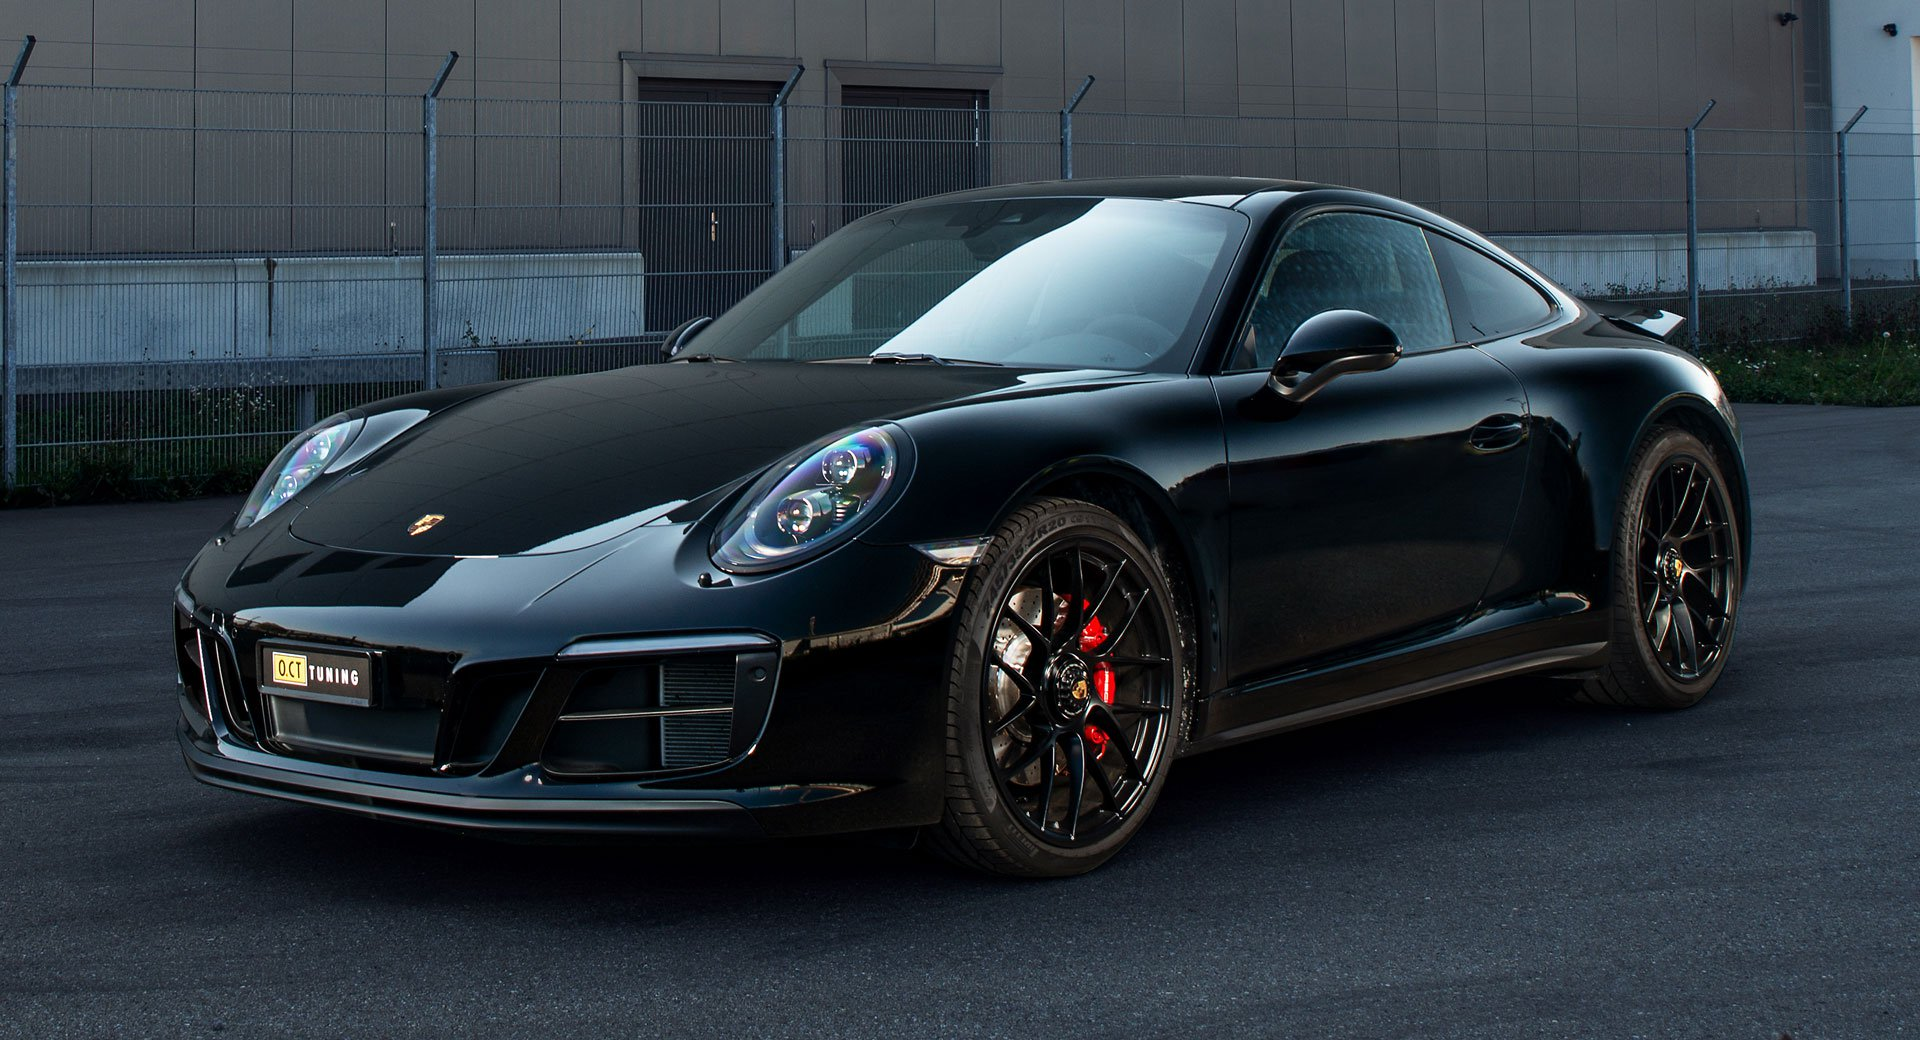 O.CT Tuning has released power upgrades for the previous (991.2) generation of the Porsche 911 Carrera, Carrera S, and Carrera GTS